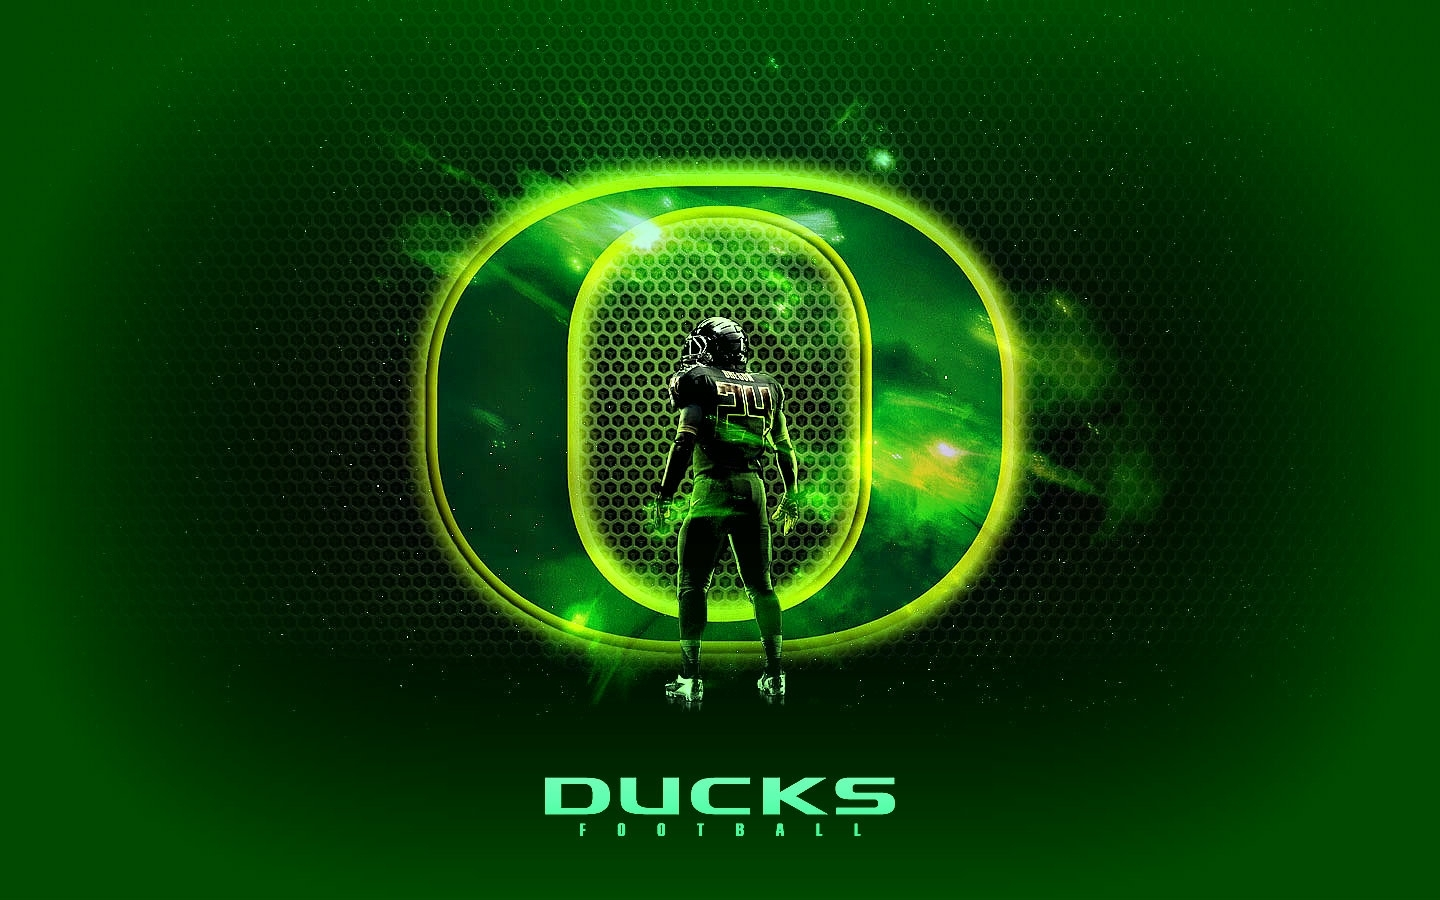 oregon ducks logo football wallpaper widescreen. - media file